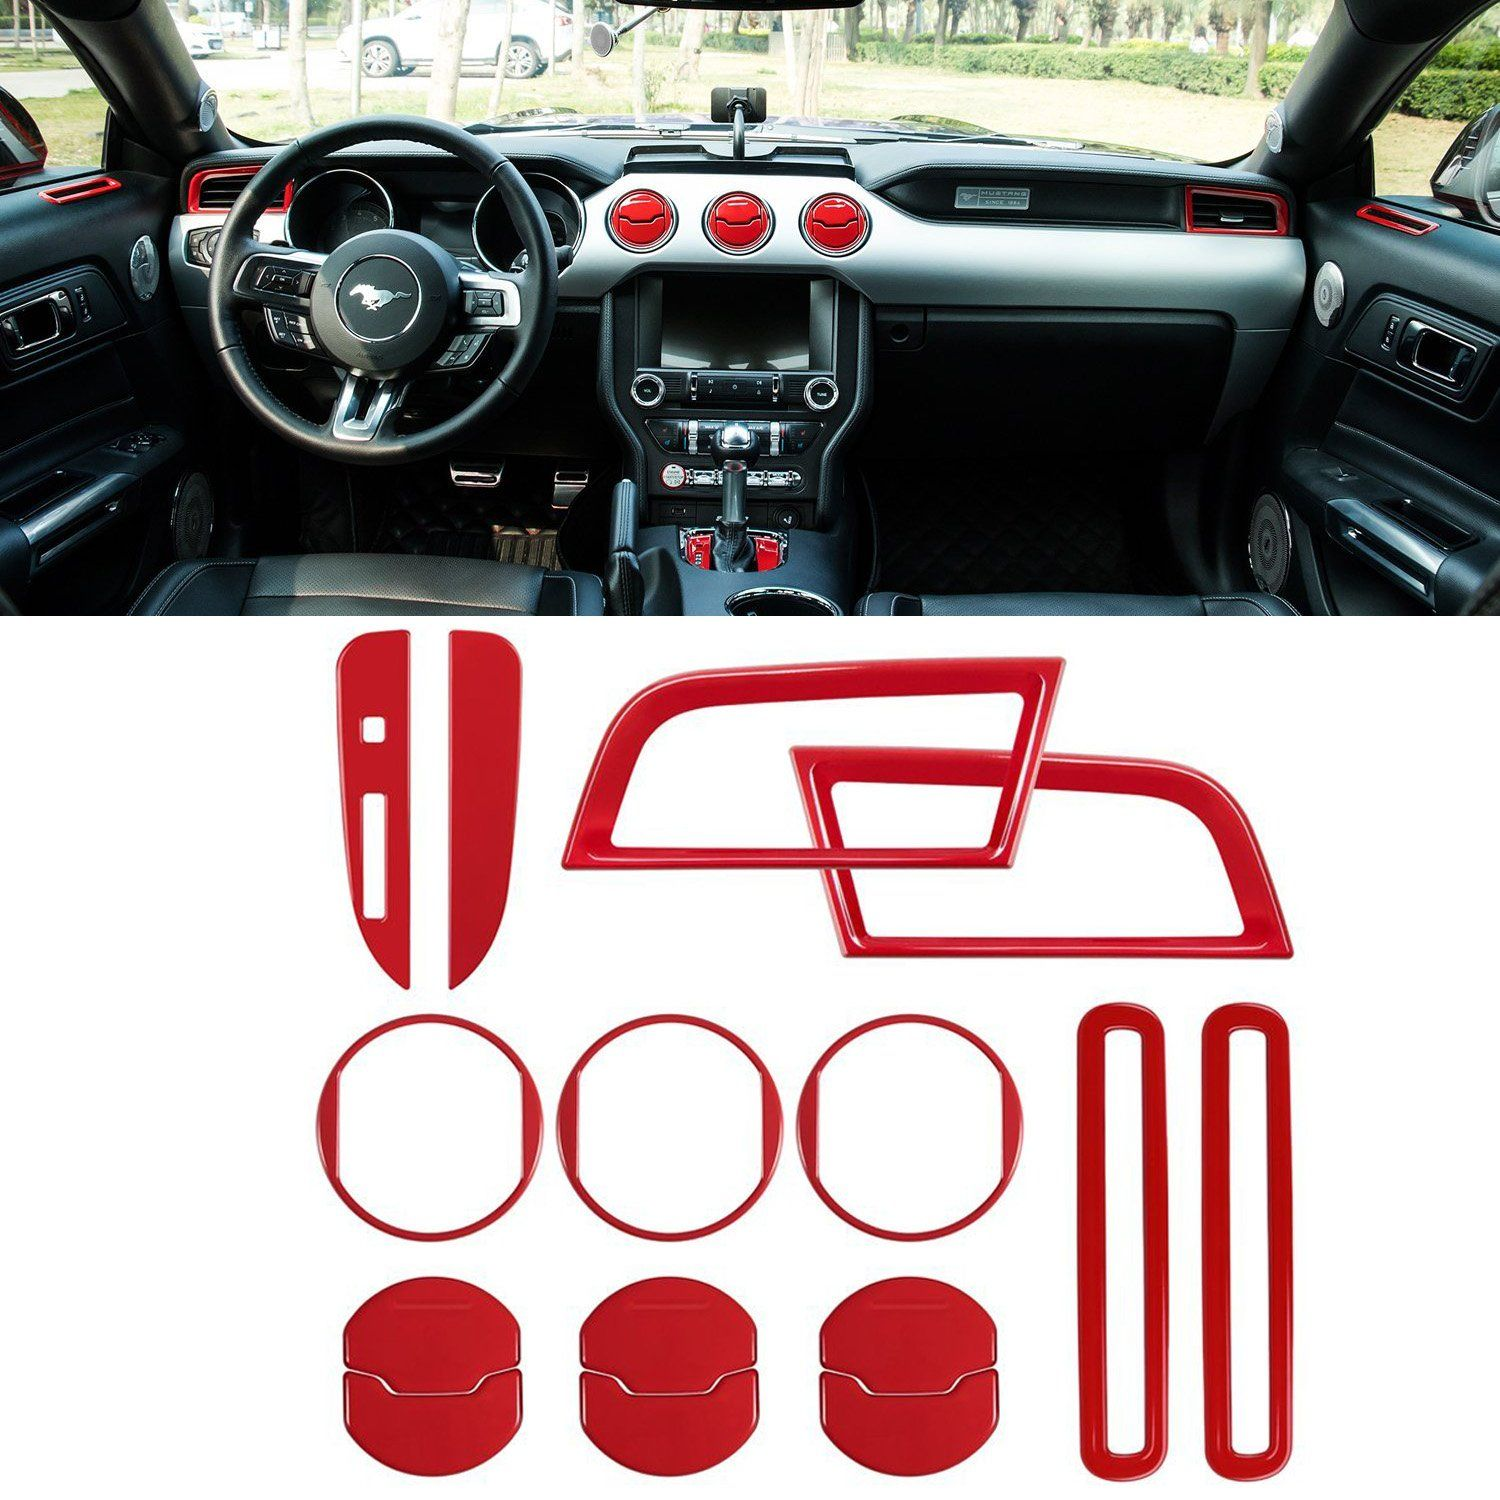 Voodonala Red Steering Wheel Decorative Trim Car Steering Wheel Cover for 2015 2016 2017 Ford F150 F250 F350 Super Duty